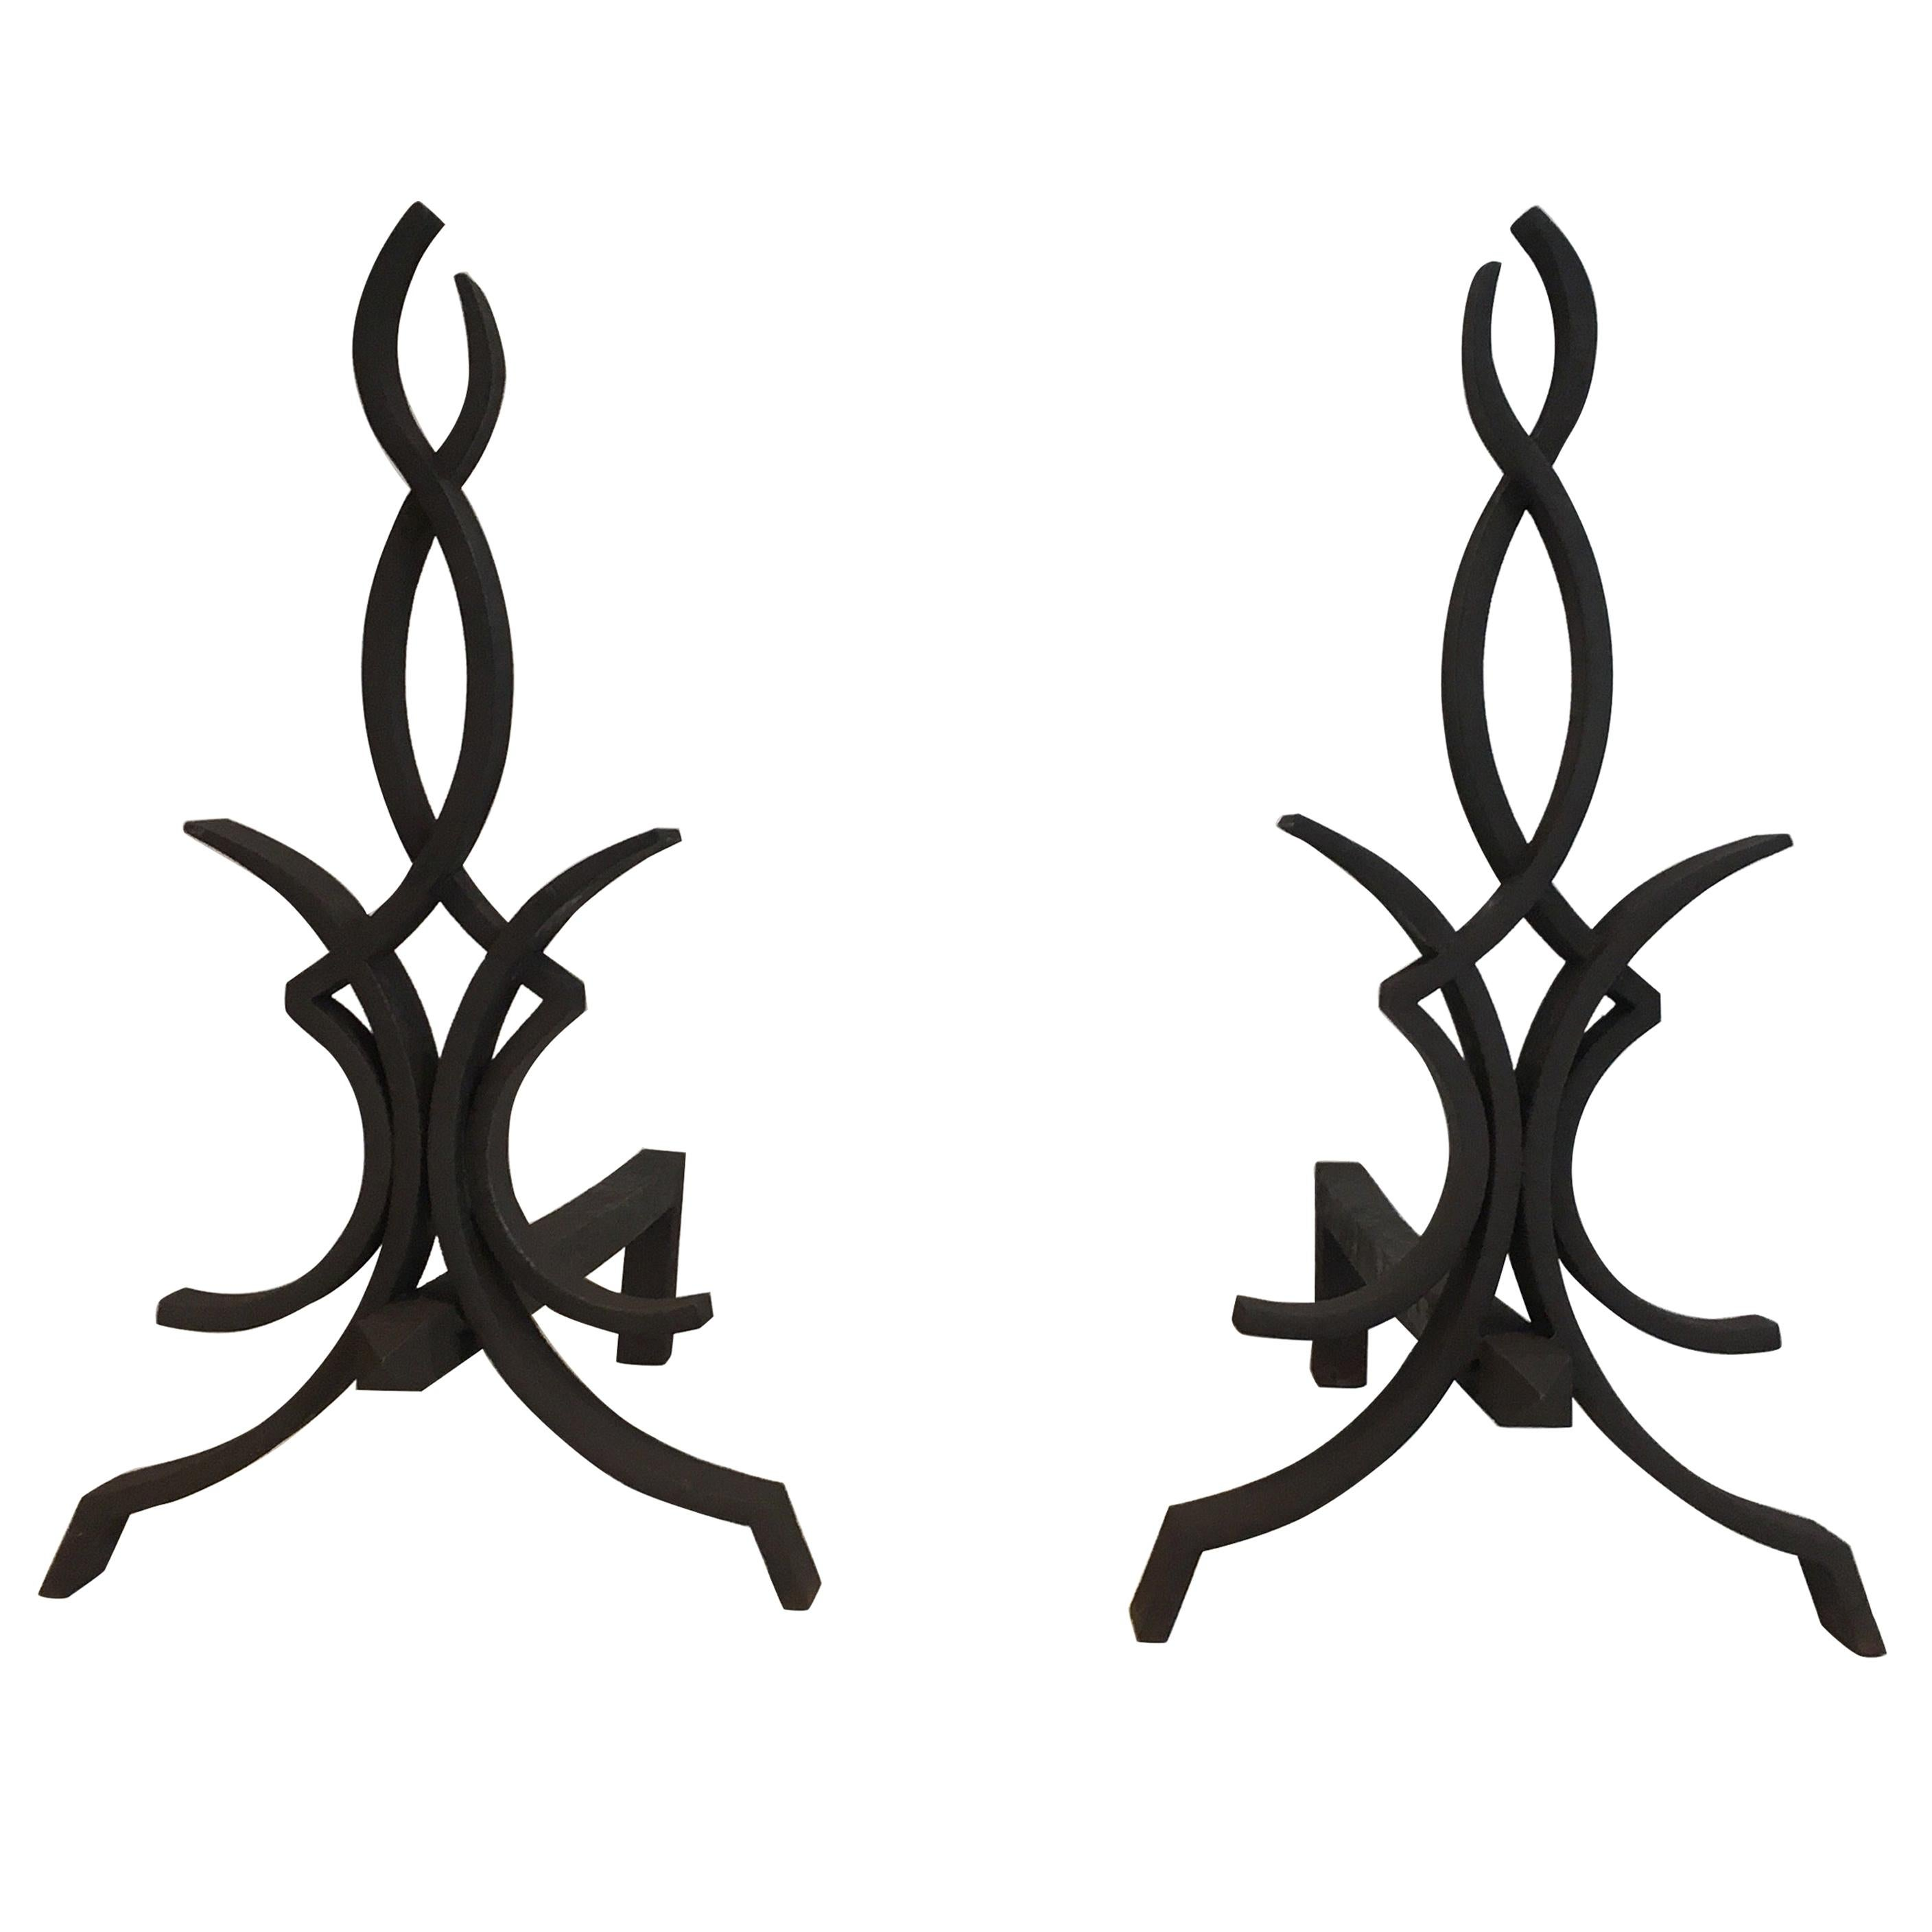 Raymond Subes, Pair of Wrought Iron Andirons, French, Circa 1940